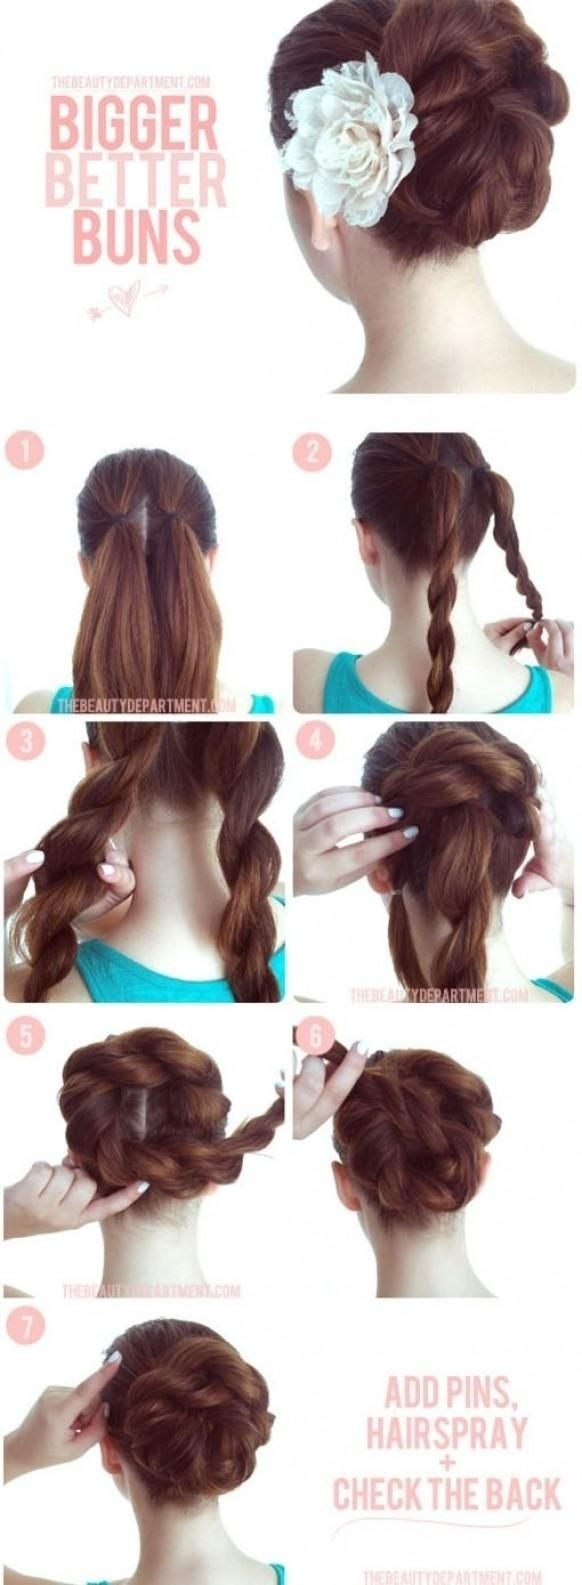 15 Braided Bun Updos Ideas - PoPular Haircuts #bunupdo